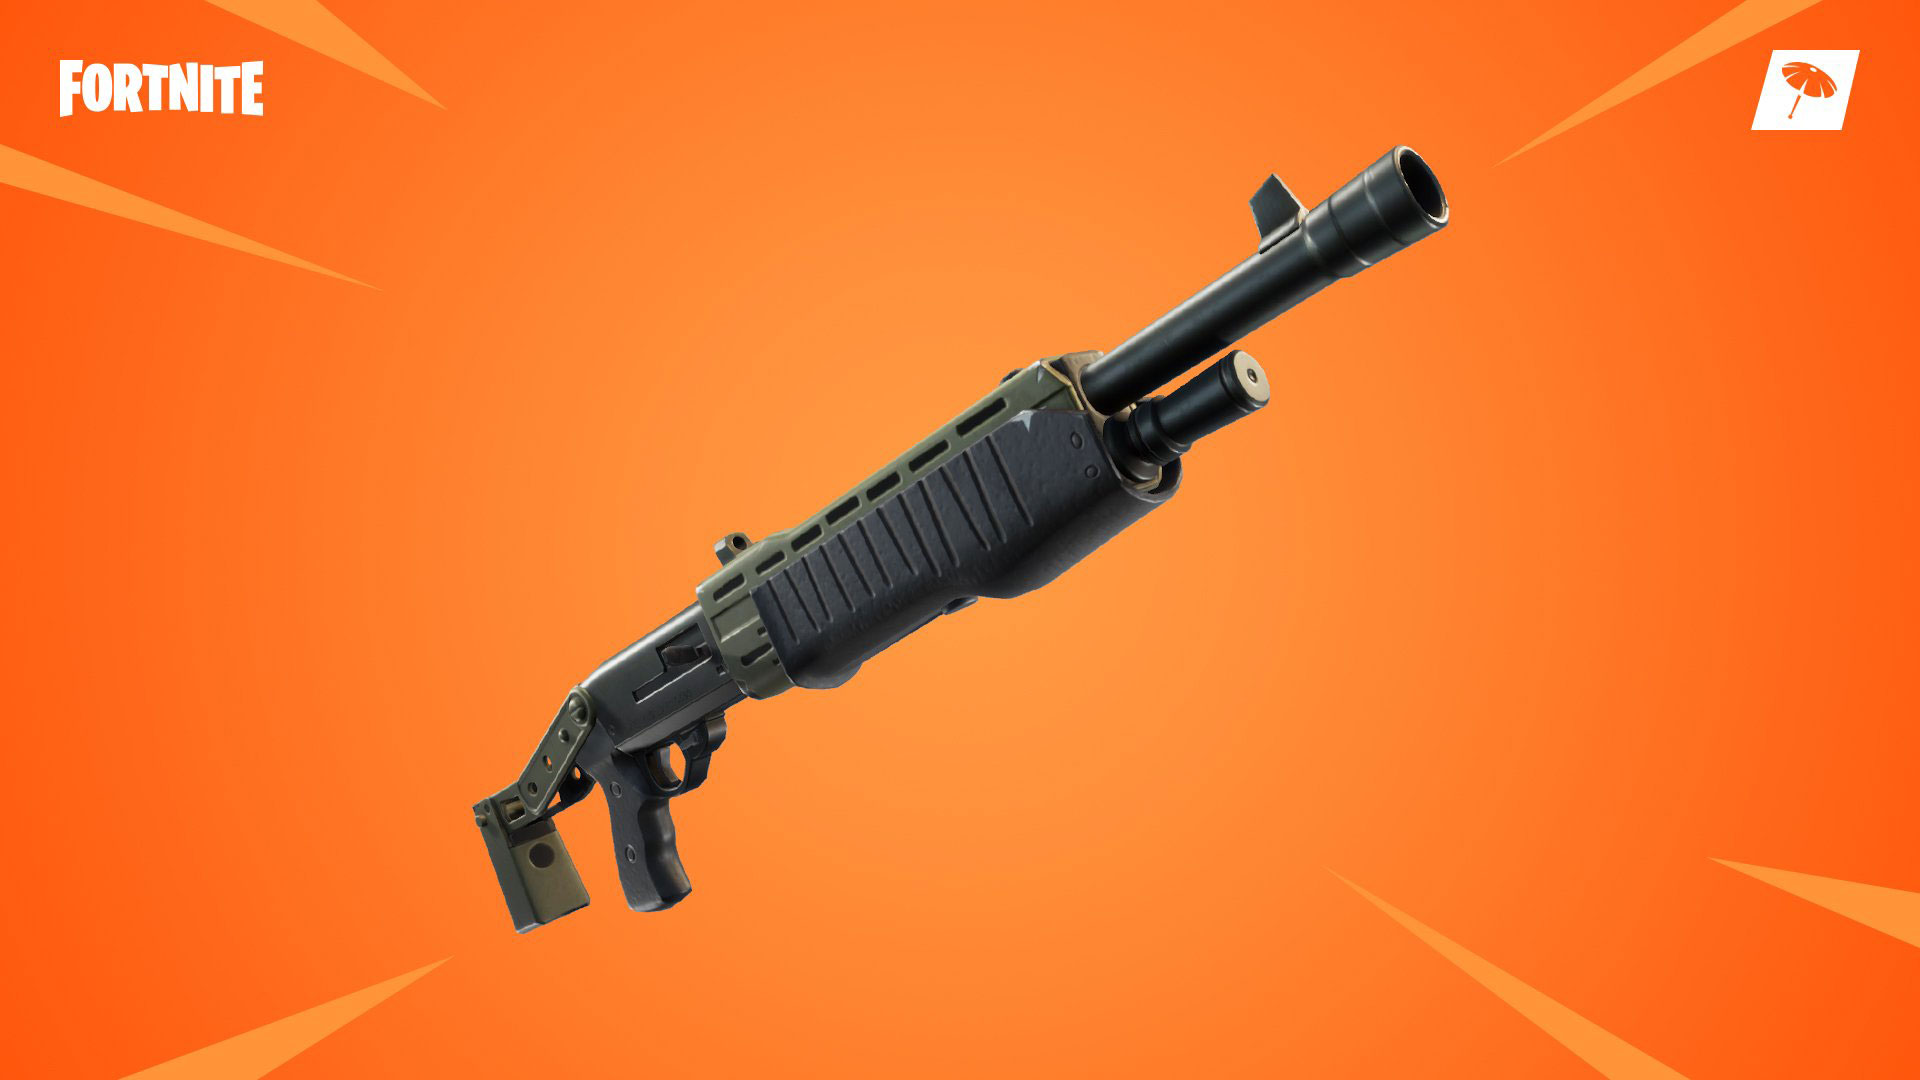 Fortnite Best Weapons And Guns List Season 8 S Top Weapons In The